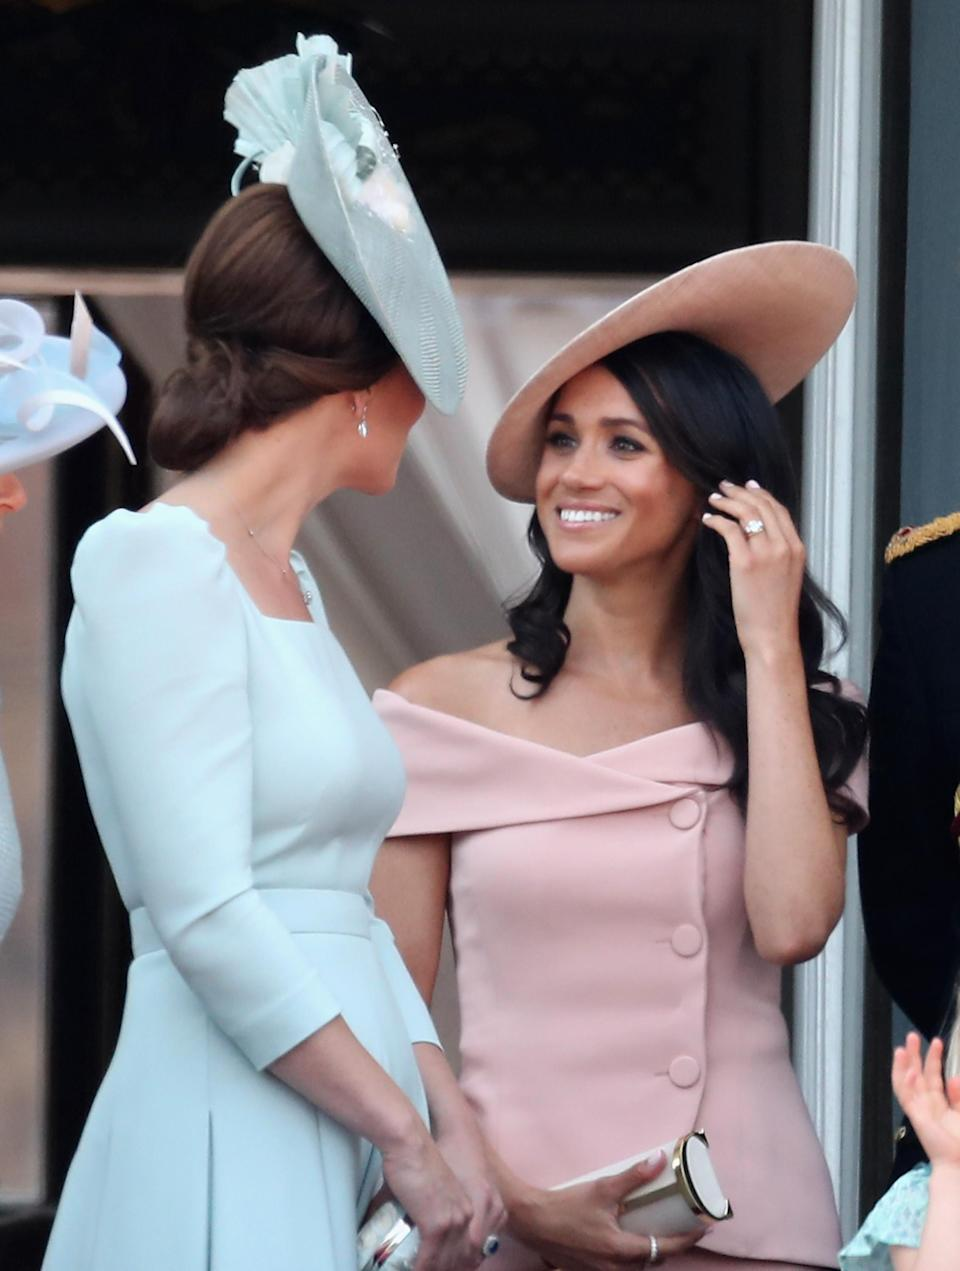 On 9 June, the Duchess of Sussex made her Buckingham Palace debut in a Carolina Herrera skirt suit [Photo: Getty]